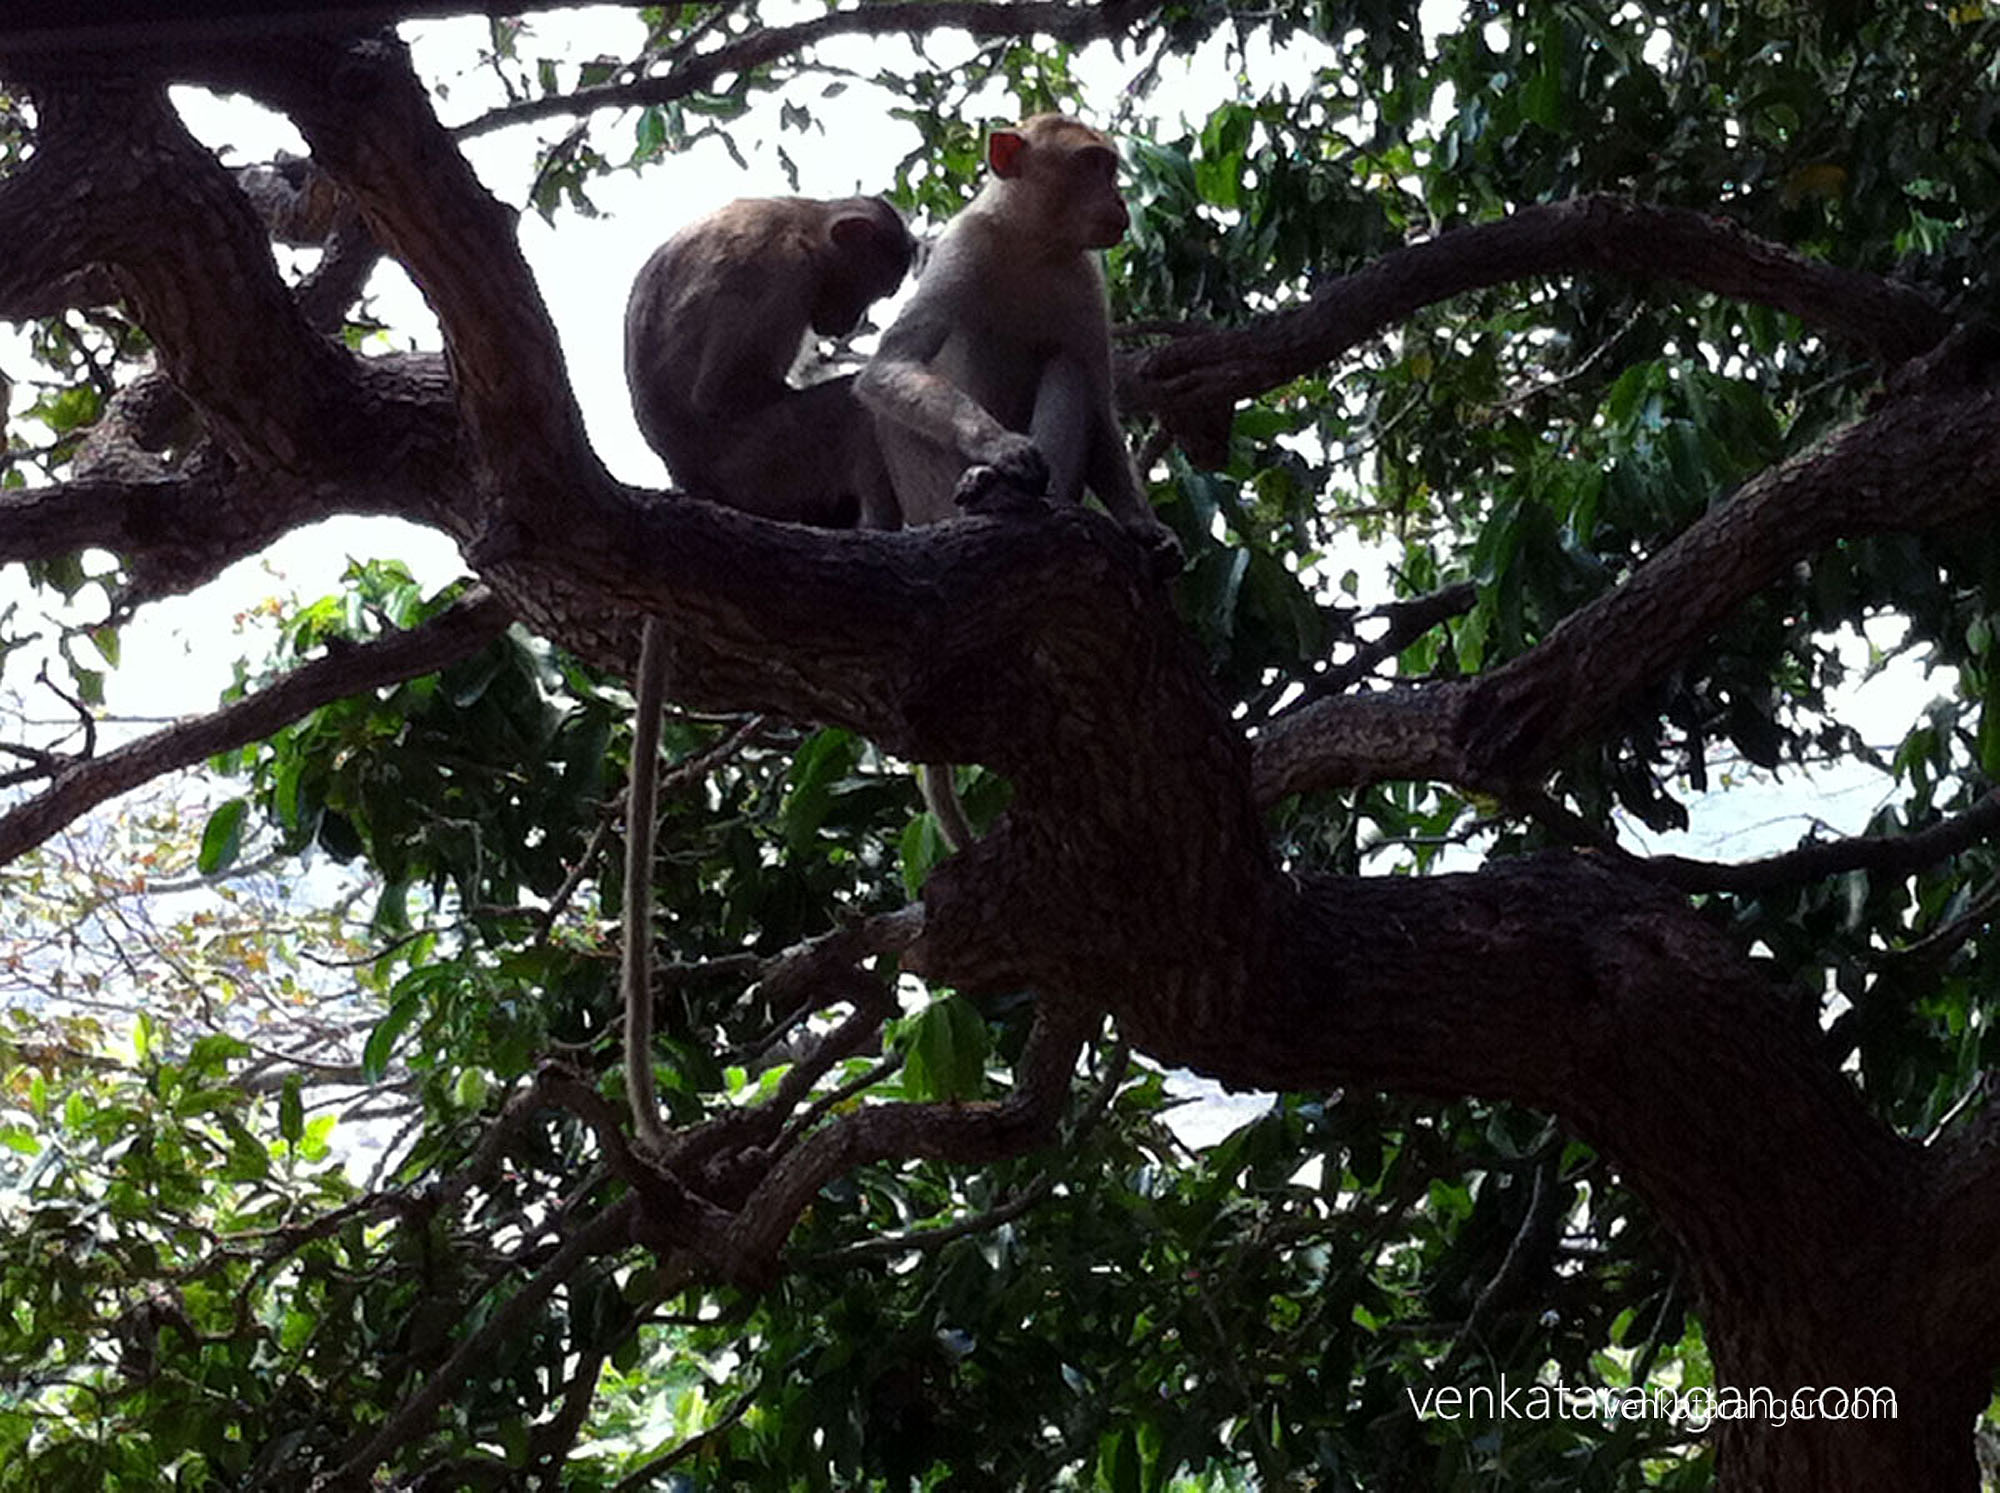 Monkeys everywhere in Sholingur